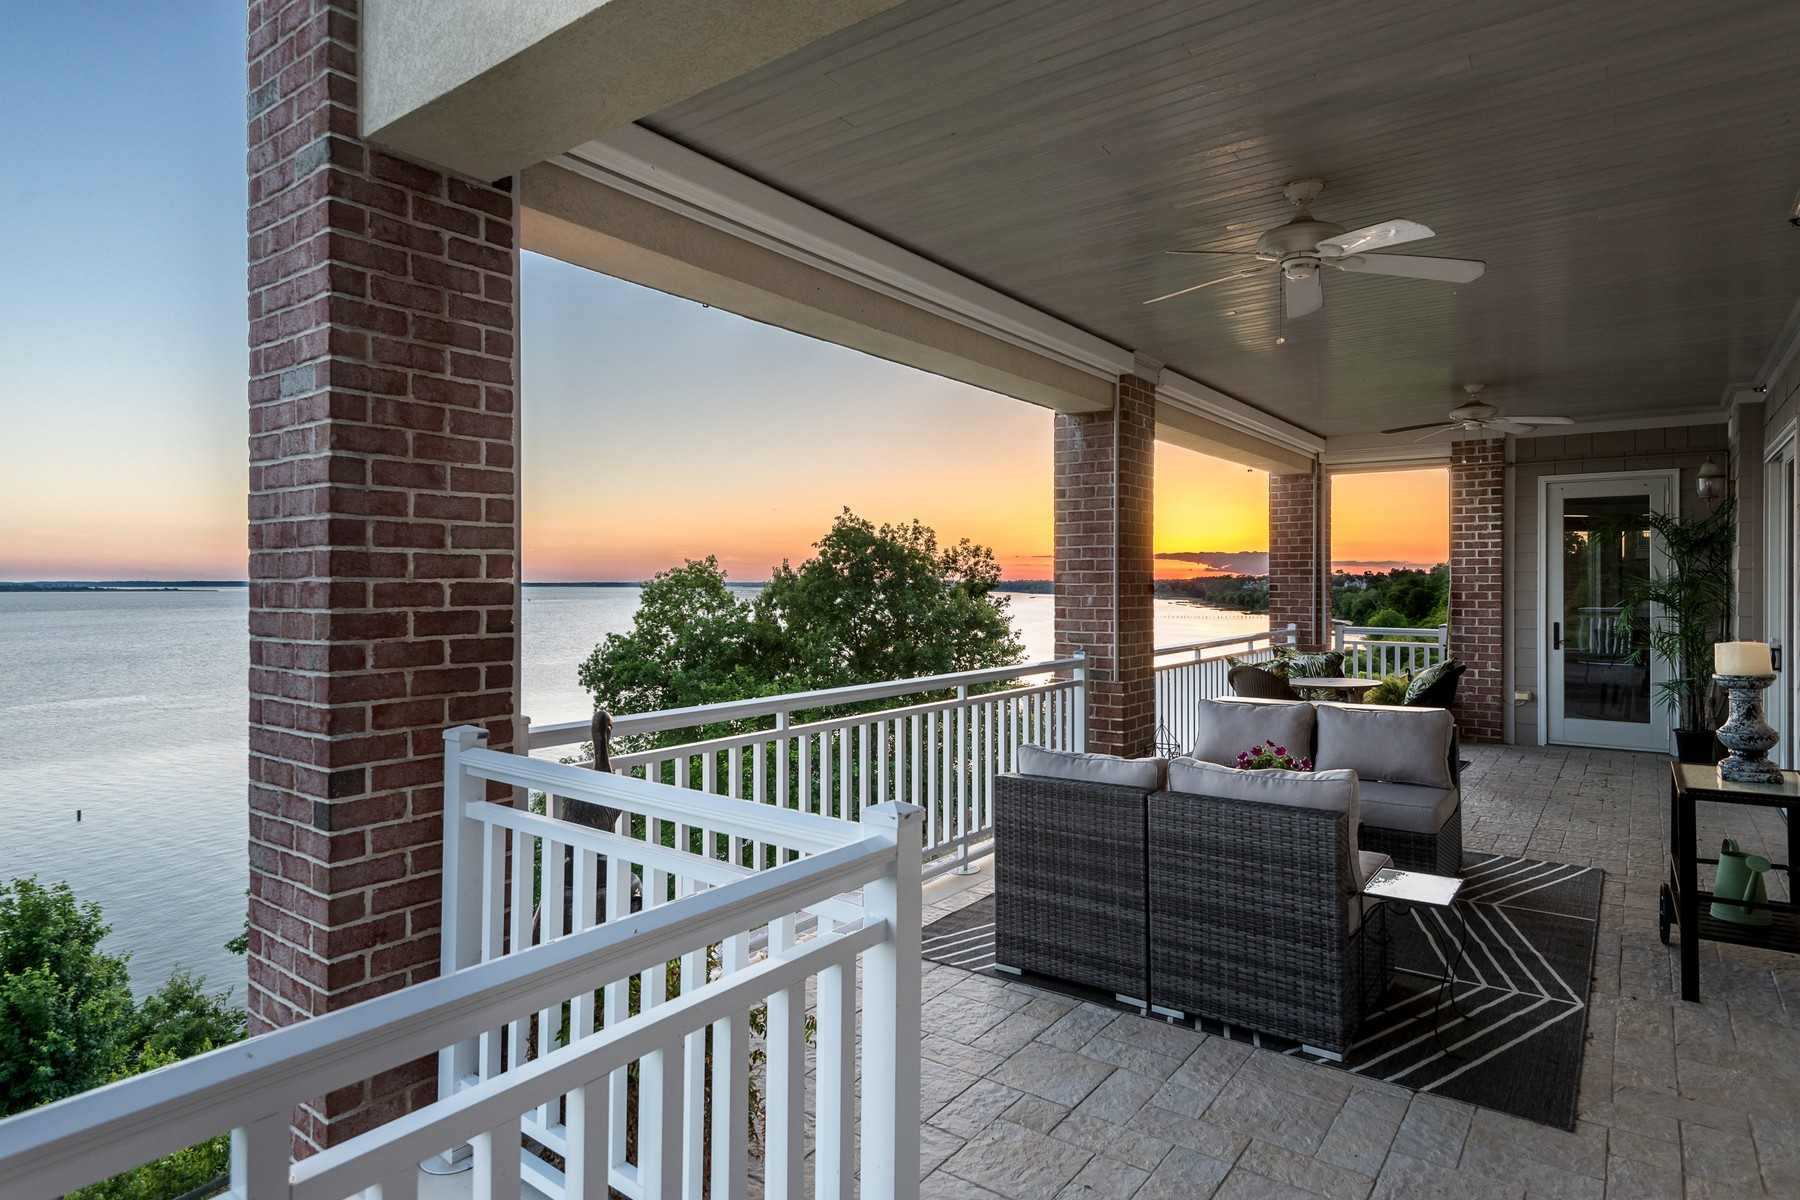 Condominiums for Sale at River Bluffs at Kingmill 605 River Bluffs Bluff 605, Williamsburg, Virginia 23185 United States